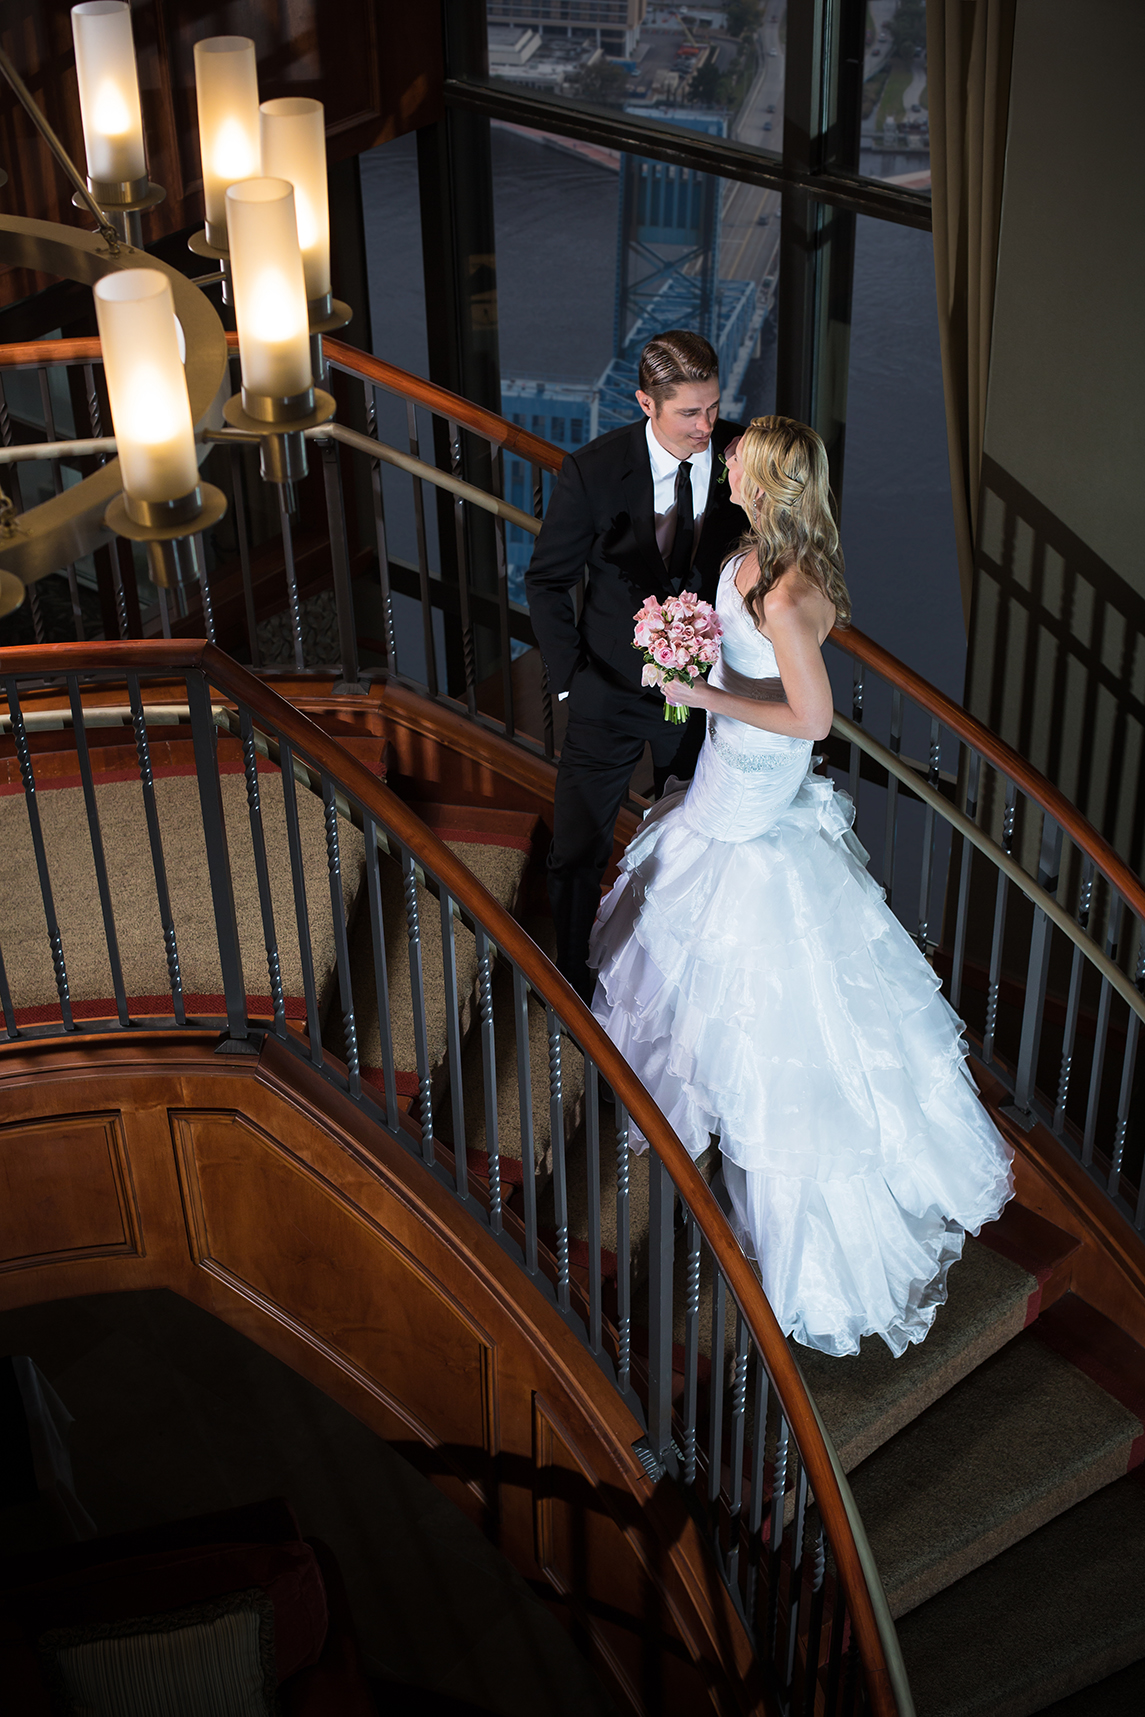 adam-szarmack-riverclub-wedding-photographer-jacksonville-3.jpg